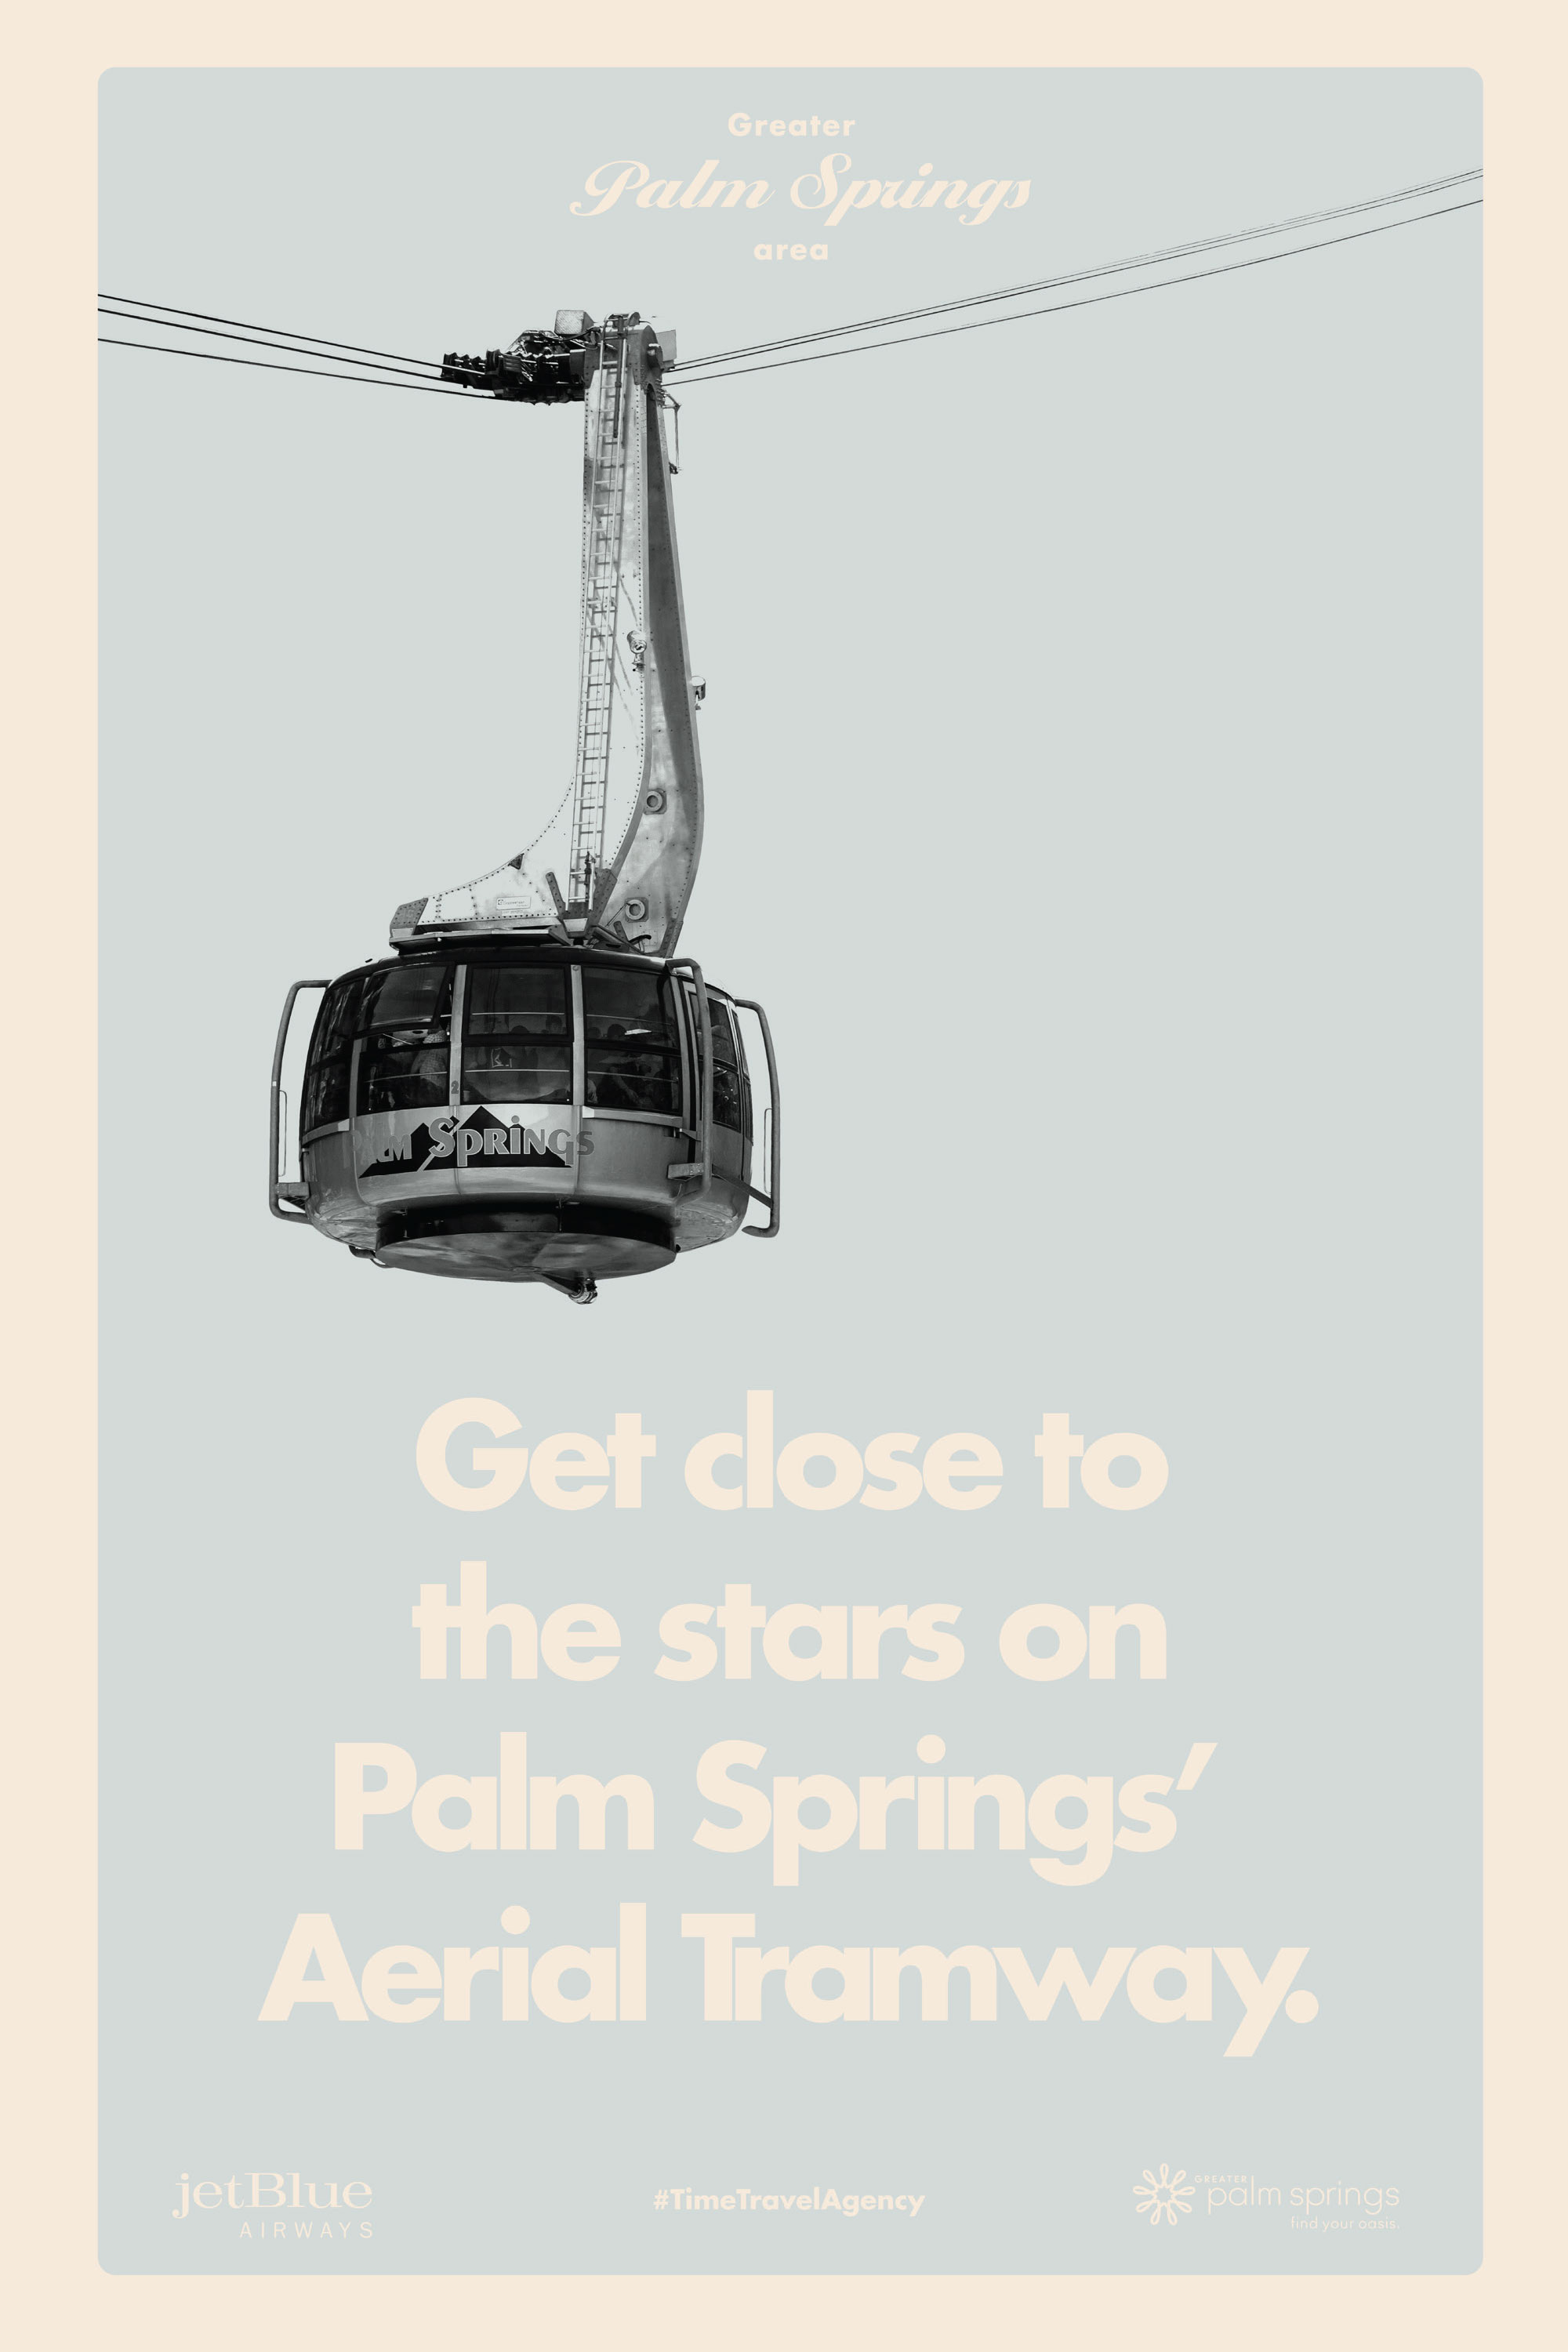 jetblue outdoor advert by lowe aerial tramway ads of the world